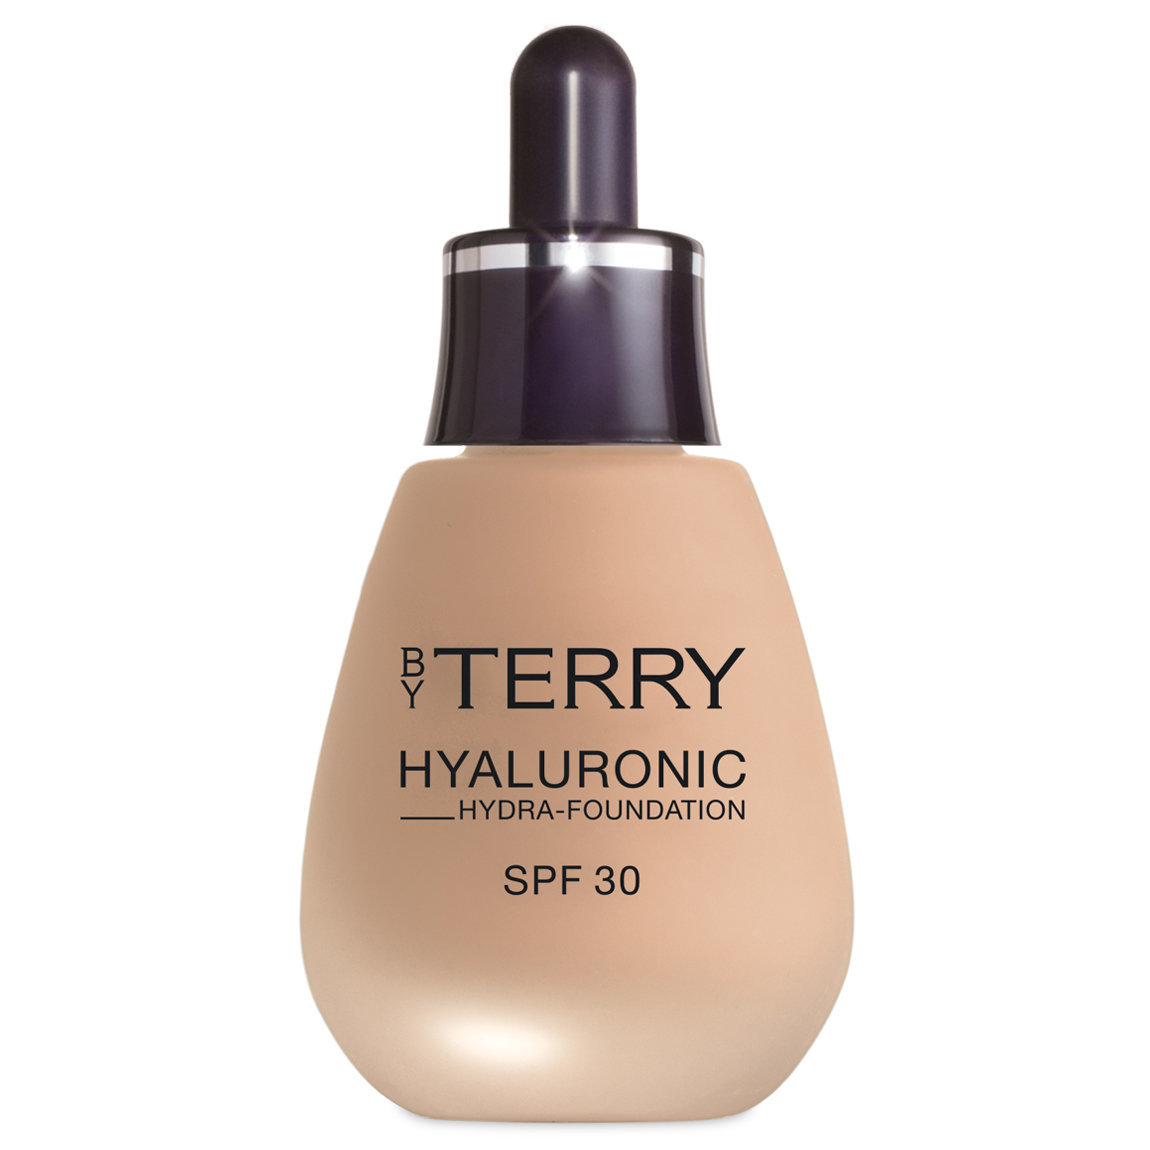 BY TERRY Hyaluronic Hydra-Foundation 100C Fair alternative view 1.